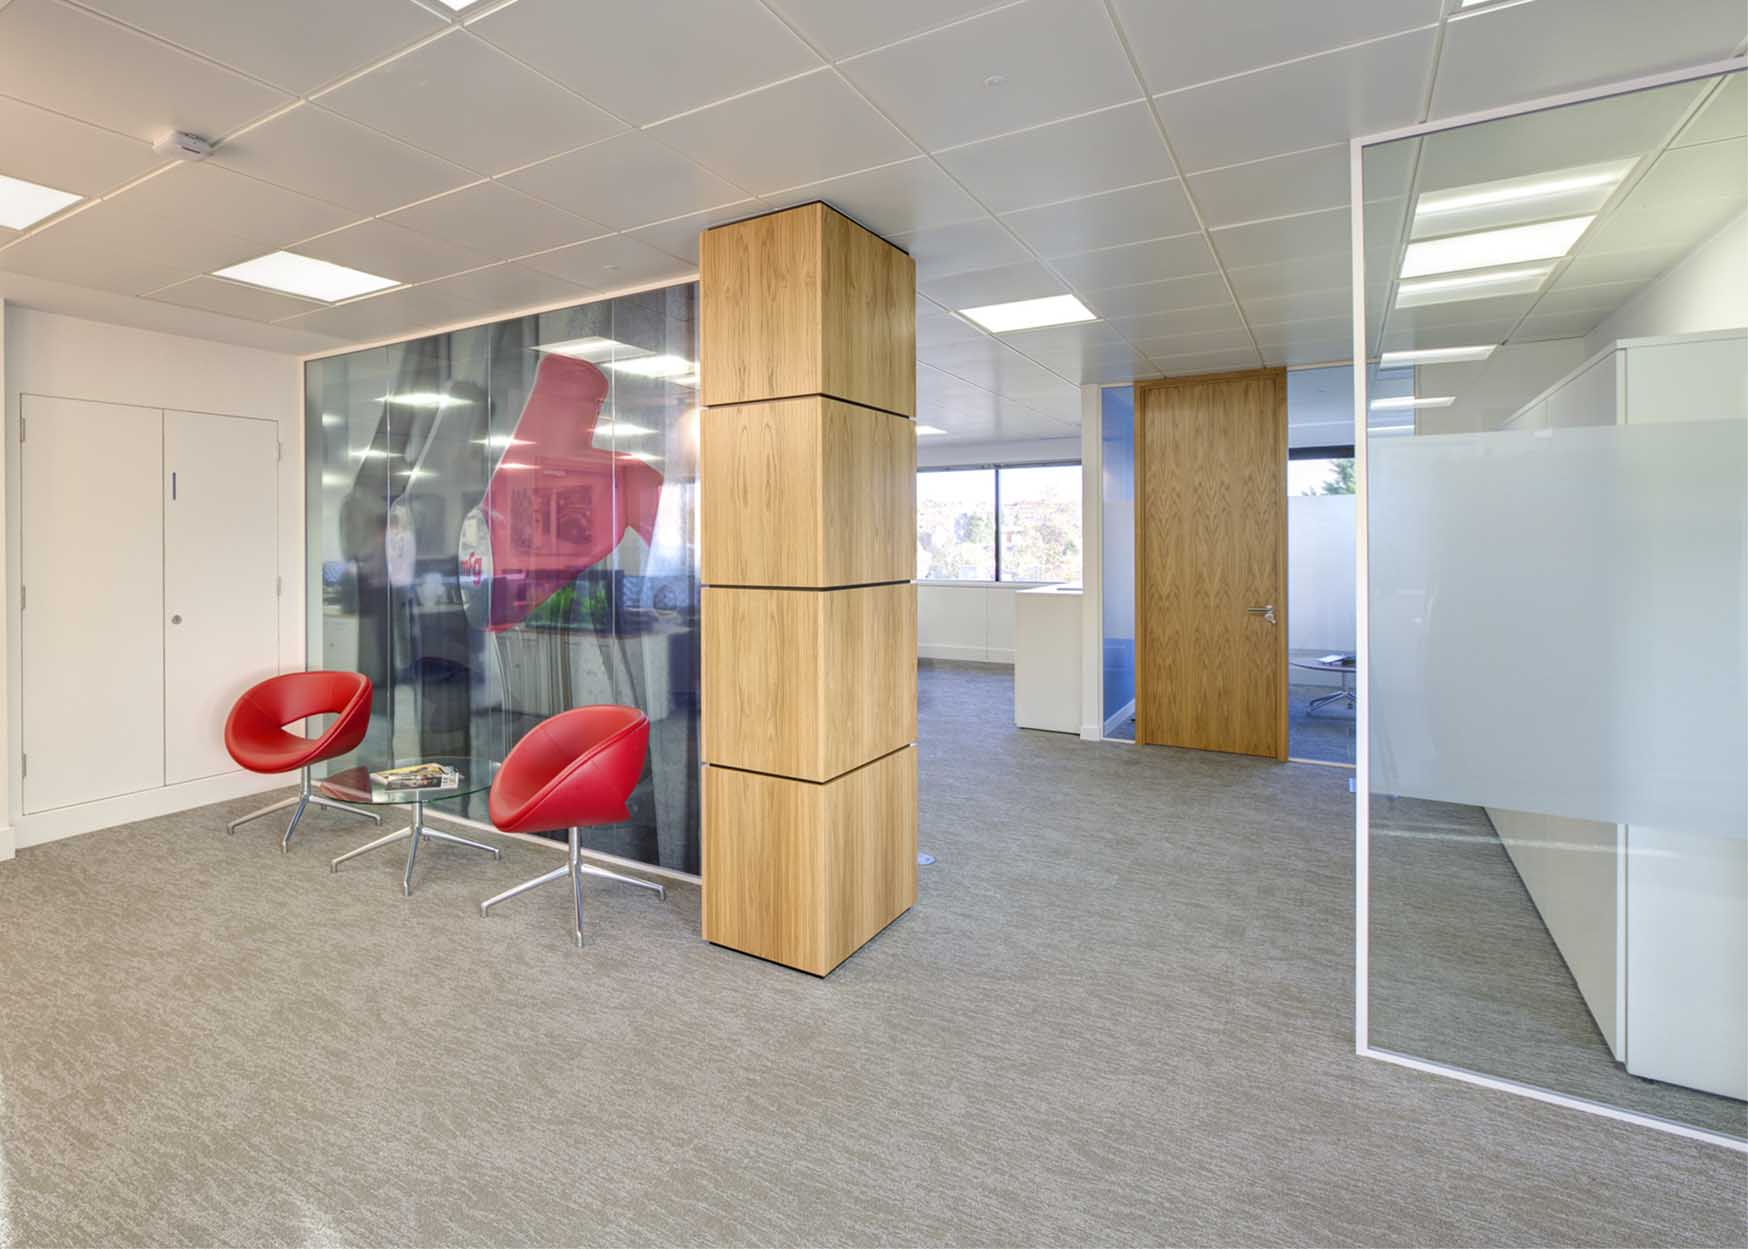 Interior Fit Out, Medium End Specification Design With Glazed Partitioning,  Bespoke Joinery, Feature Flooring, Feature Wall Panelling, Feature Wall  Finishes ...